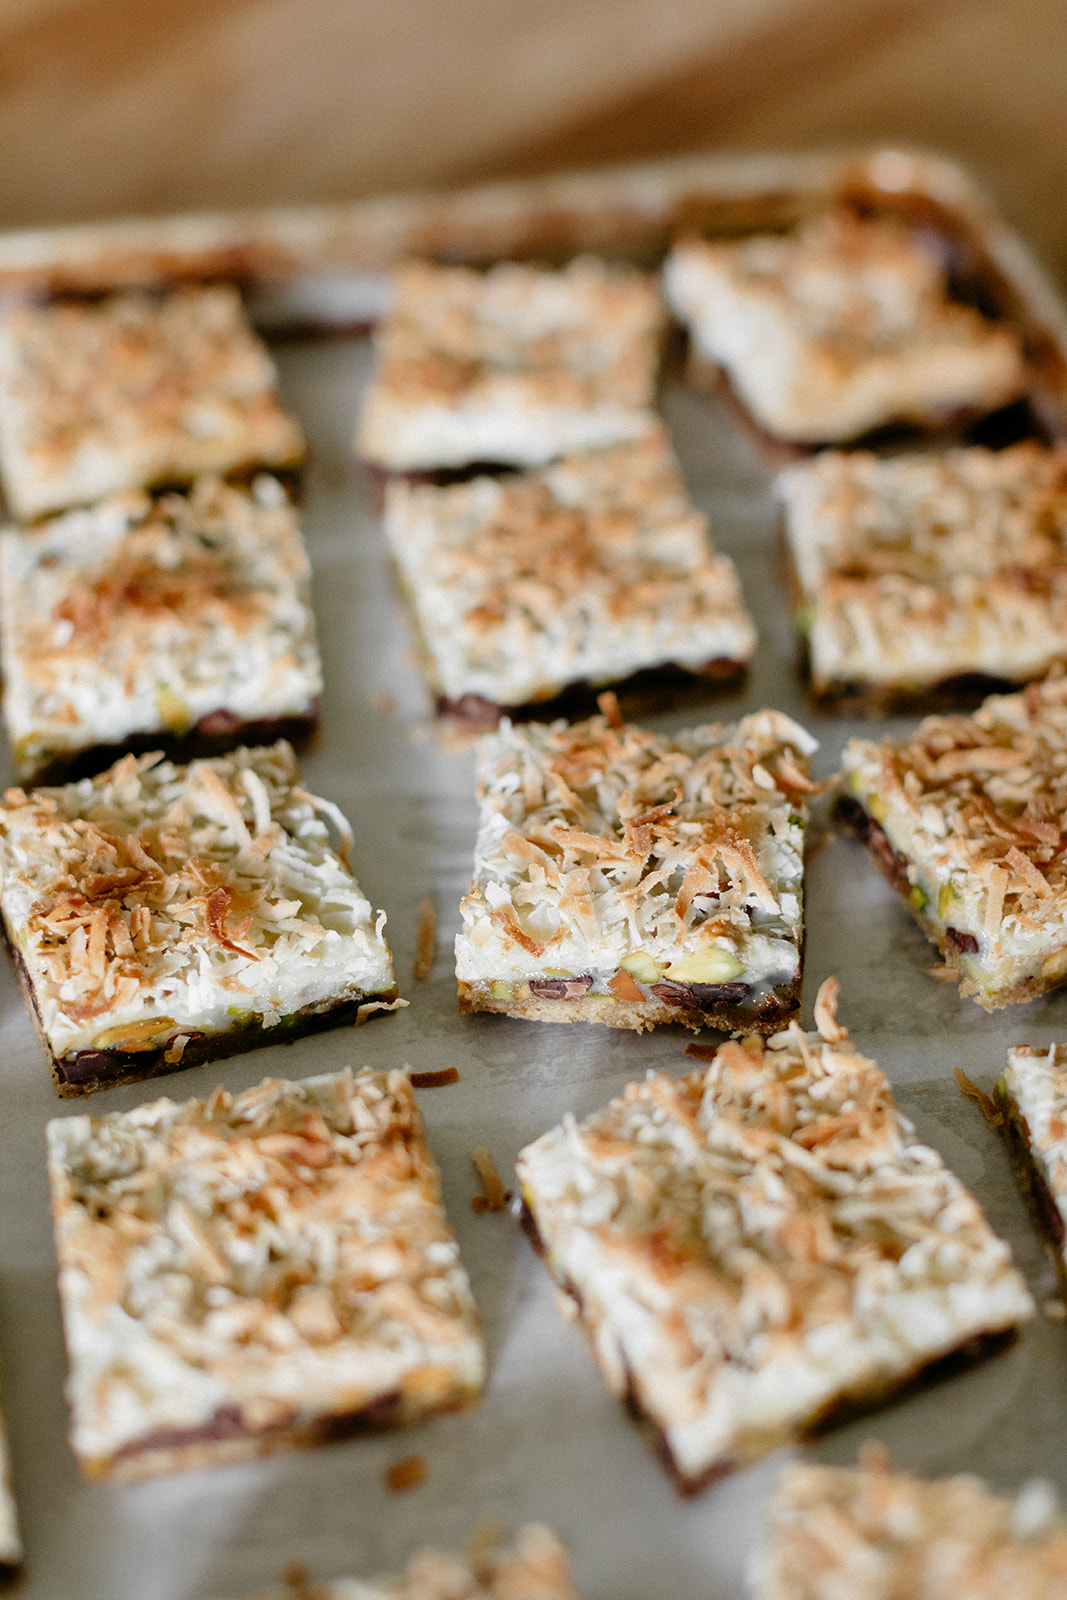 7-19-19-molly-yeh-halva-magic-bars-3.jpg